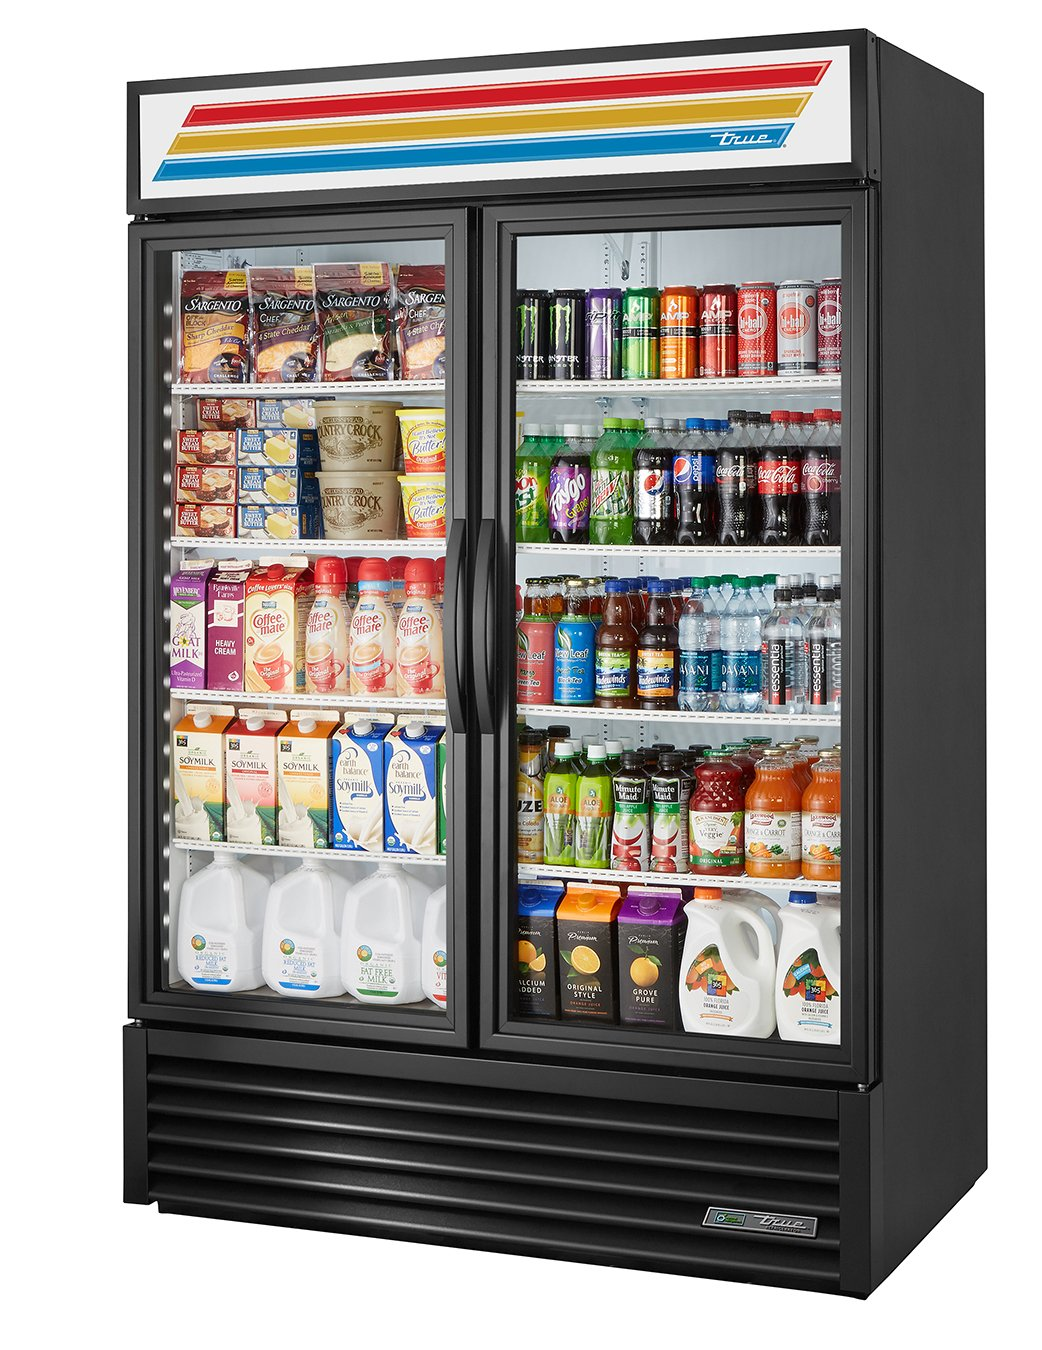 True GDM-49-HC~TSL01 Double Swing Glass Door Merchandiser Refrigerator with Hydrocarbon Refrigerant and LED Lighting, Holds 33 Degree F to 38 Degree F, 78.625'' Height, 29.875'' Width, 54.125'' Length